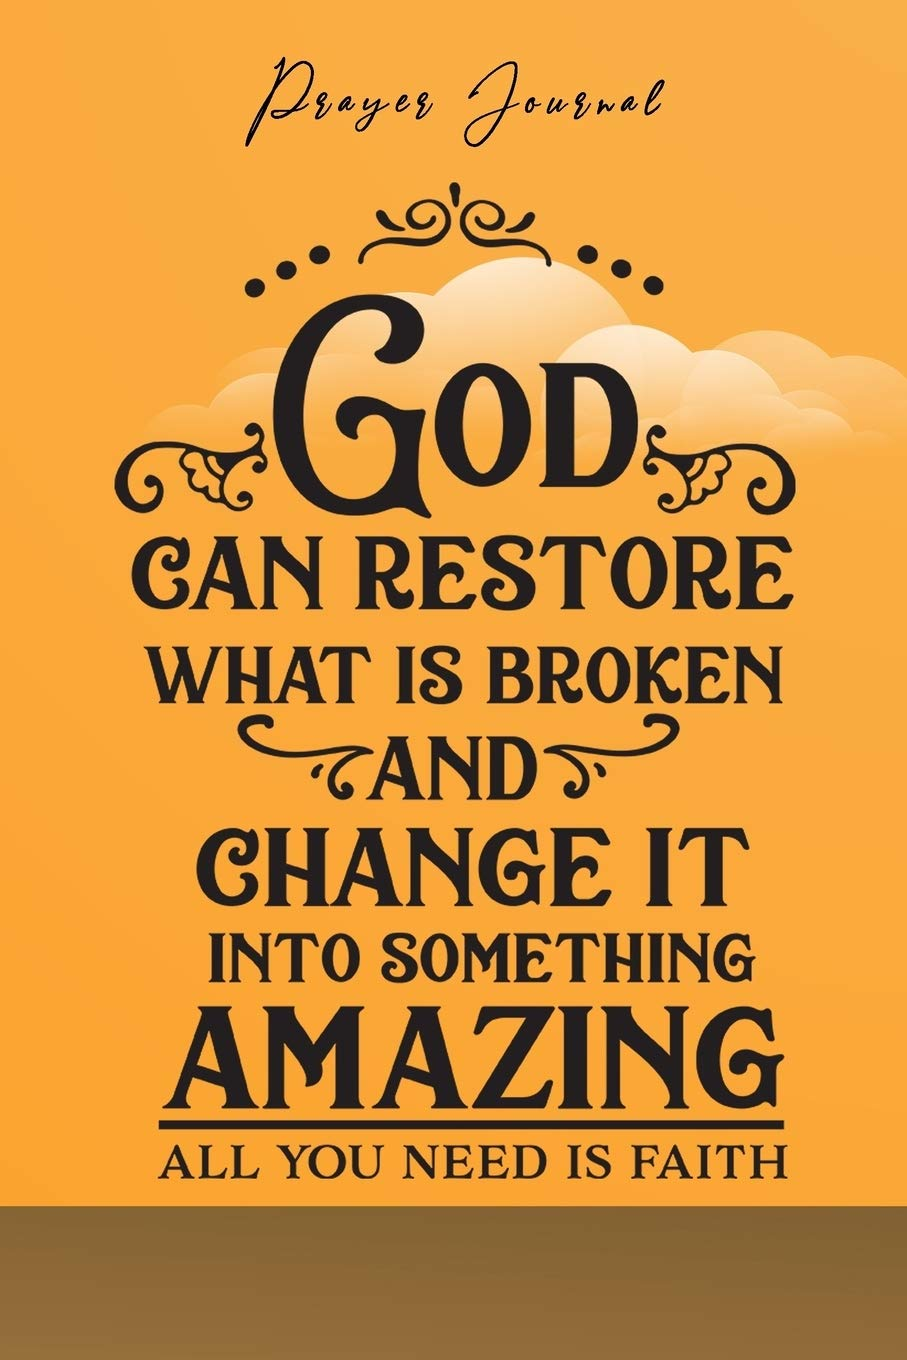 Prayer Journal: 120 Pages Notebook - God can restore what is